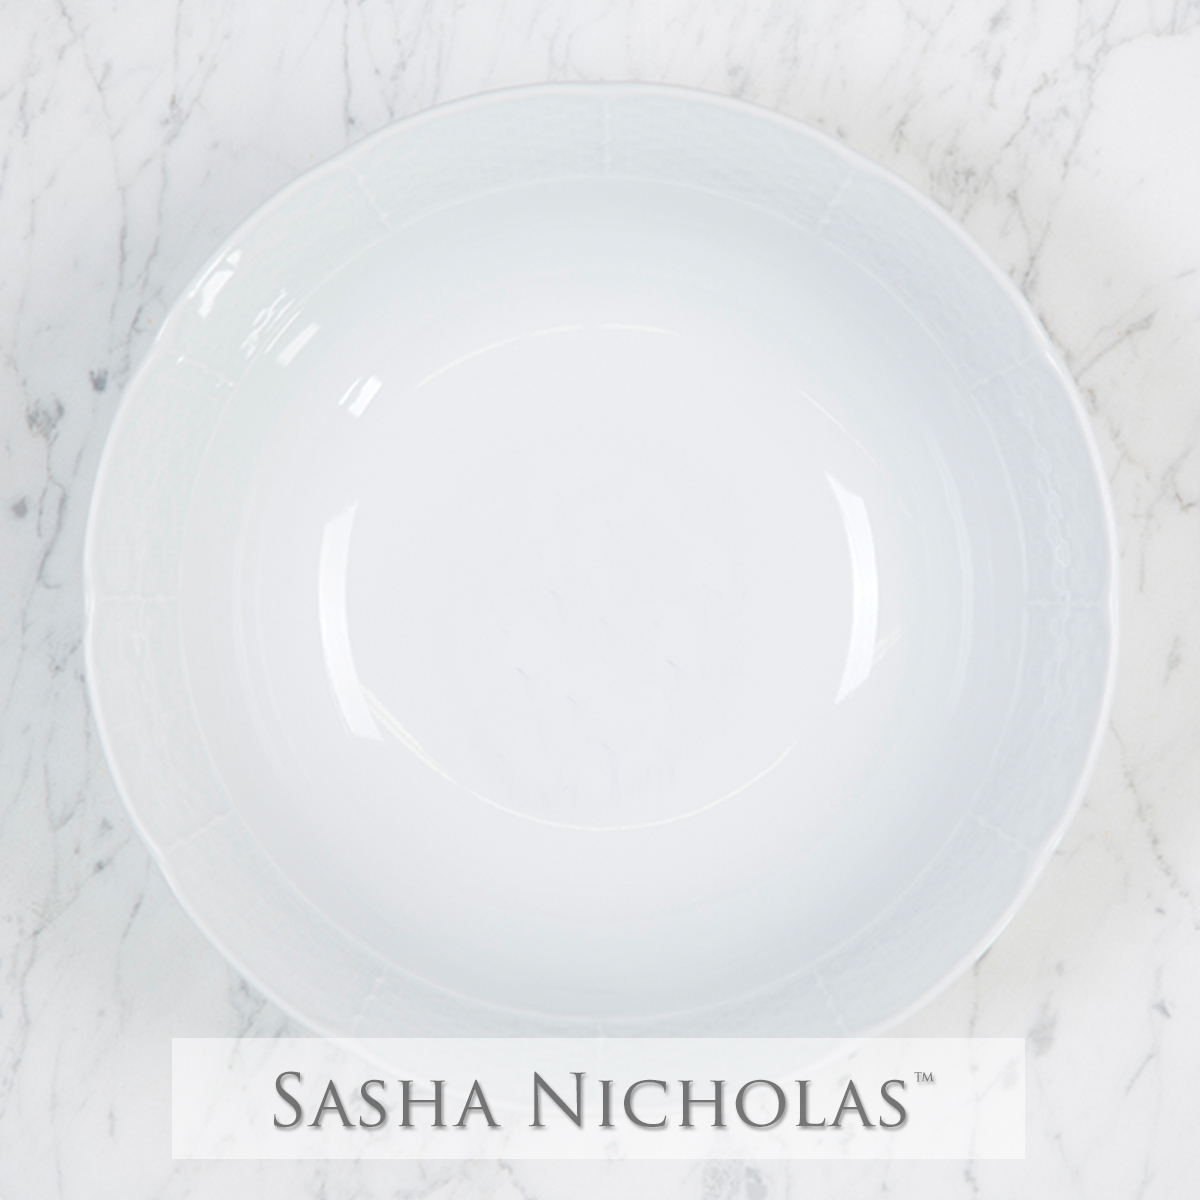 A beautiful addition to your dinnerware collection and to adorn your tablescapes with. It makes the perfect gift for your wedding registry. Choose from their signature font styles or use a custom monogram or crest of your choice! | Sasha Nicholas‰Ûªs white porcelain medium serving bowl